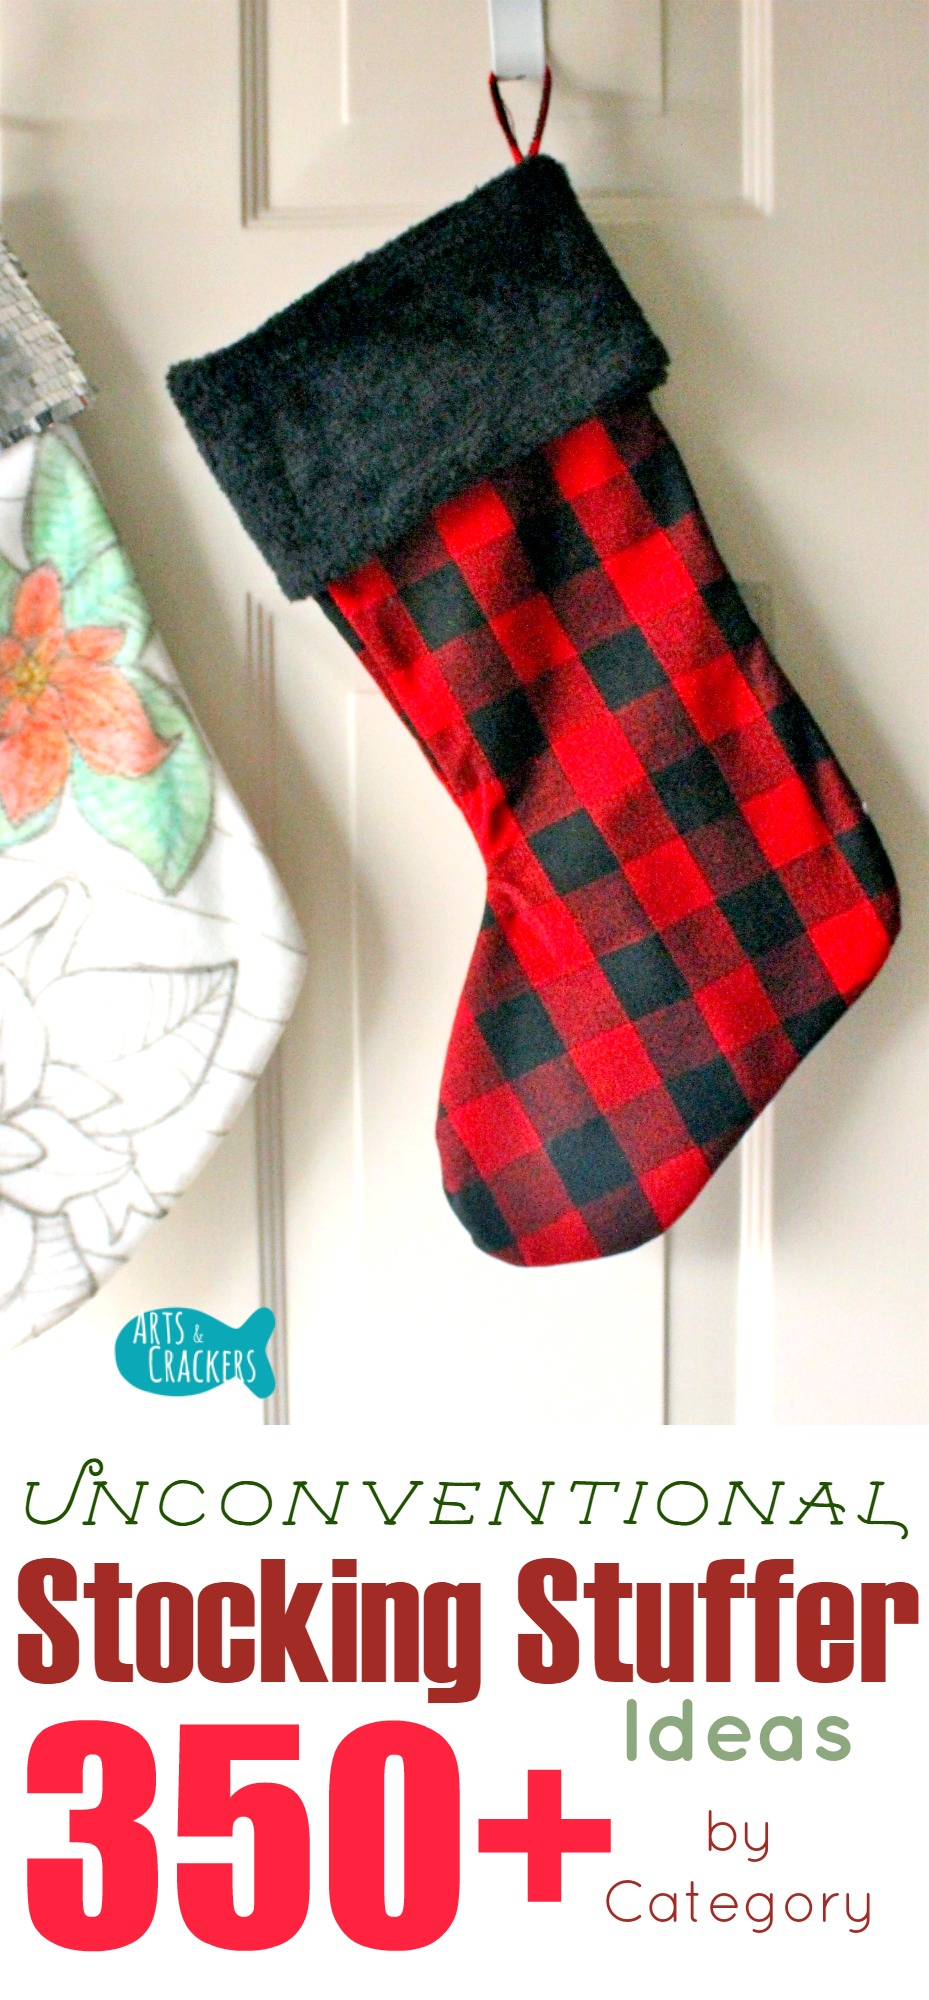 Unconventional stocking stuffer ideas by category Stocking stuffer ideas 2016